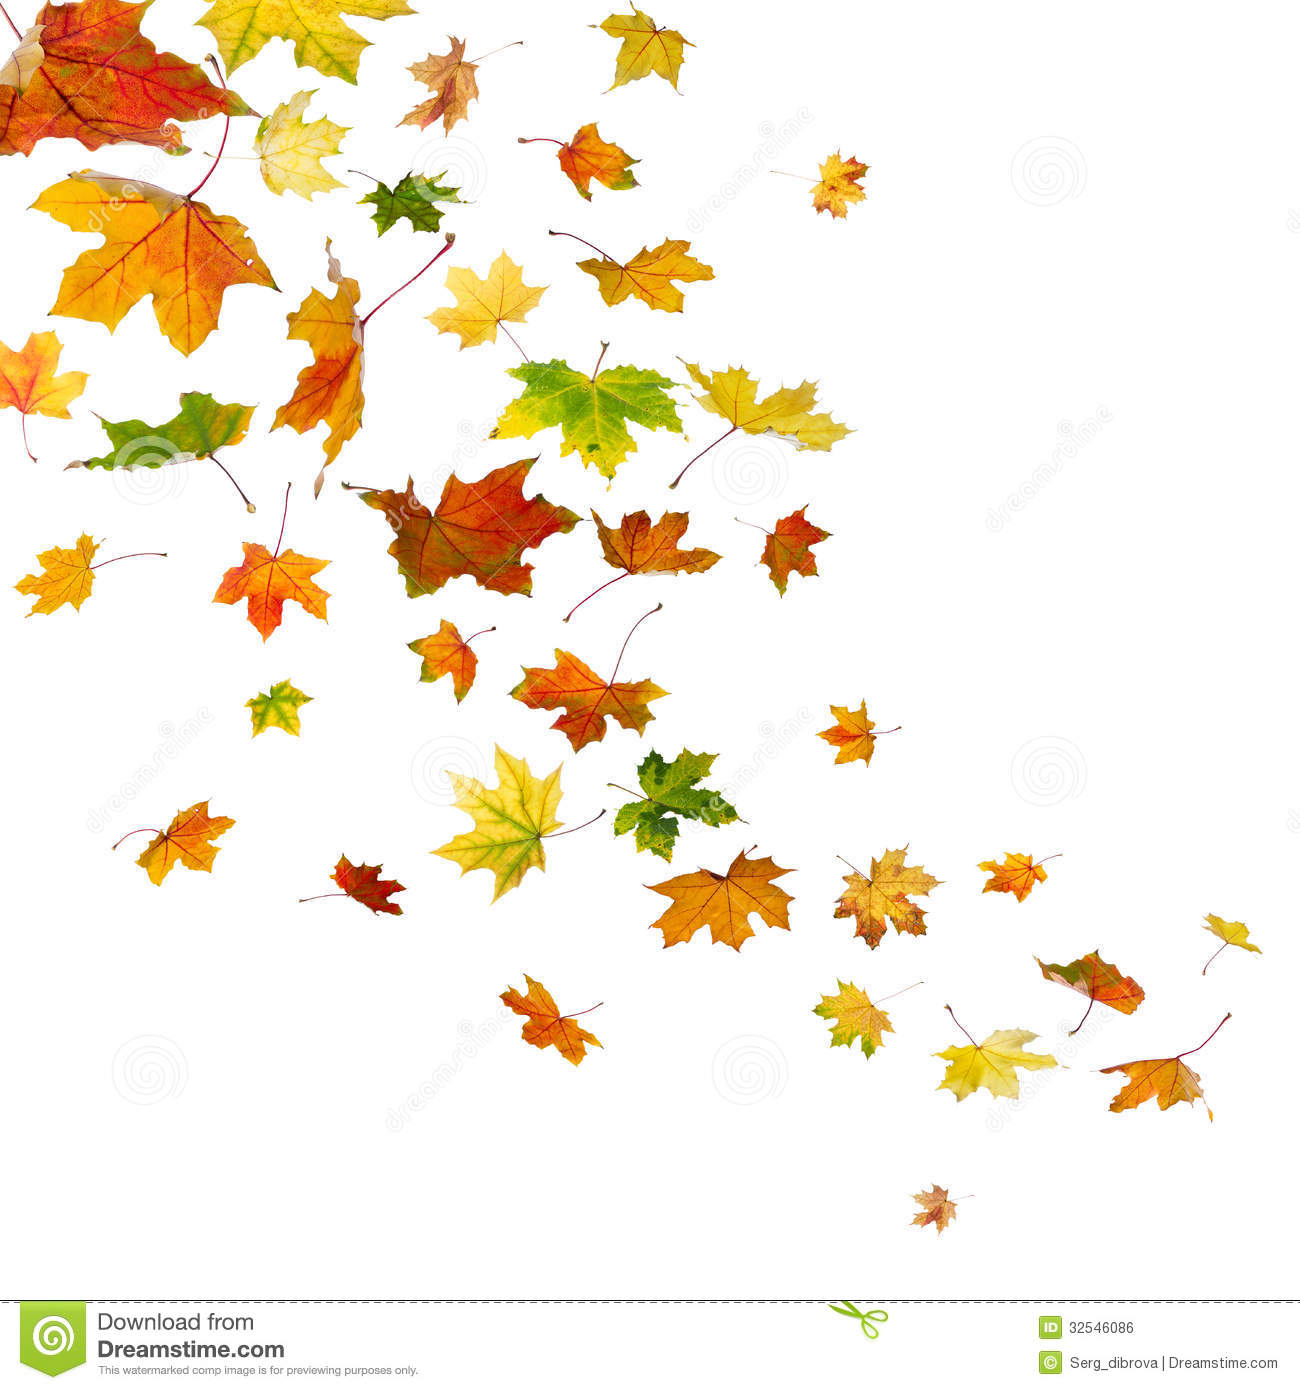 Falling Leaves Animated Wallpaper Fallen Leaves Clipart Clipground